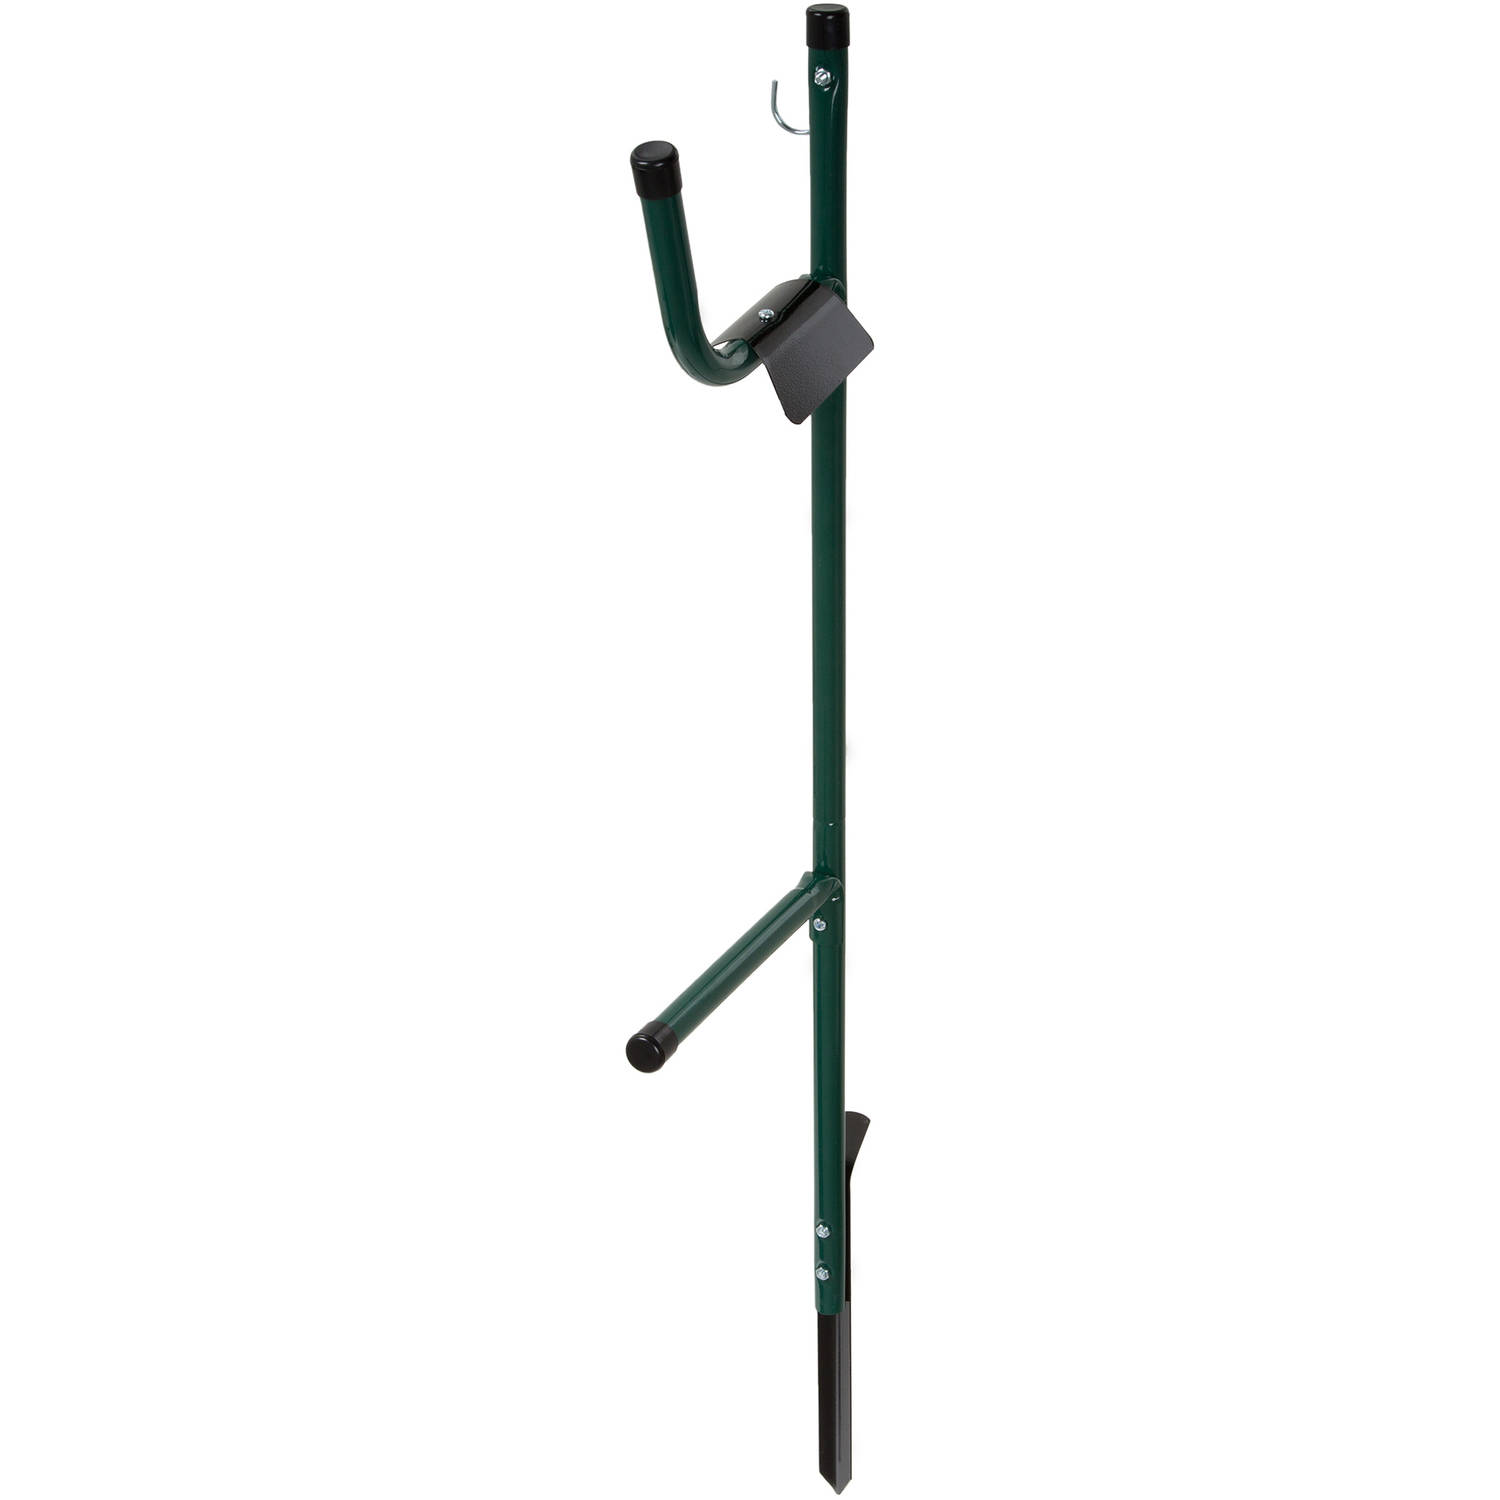 Garden Hose Holder Caddy- Easy Install Outdoor Free Standing Metal Rack for Hose... by Trademark Global LLC